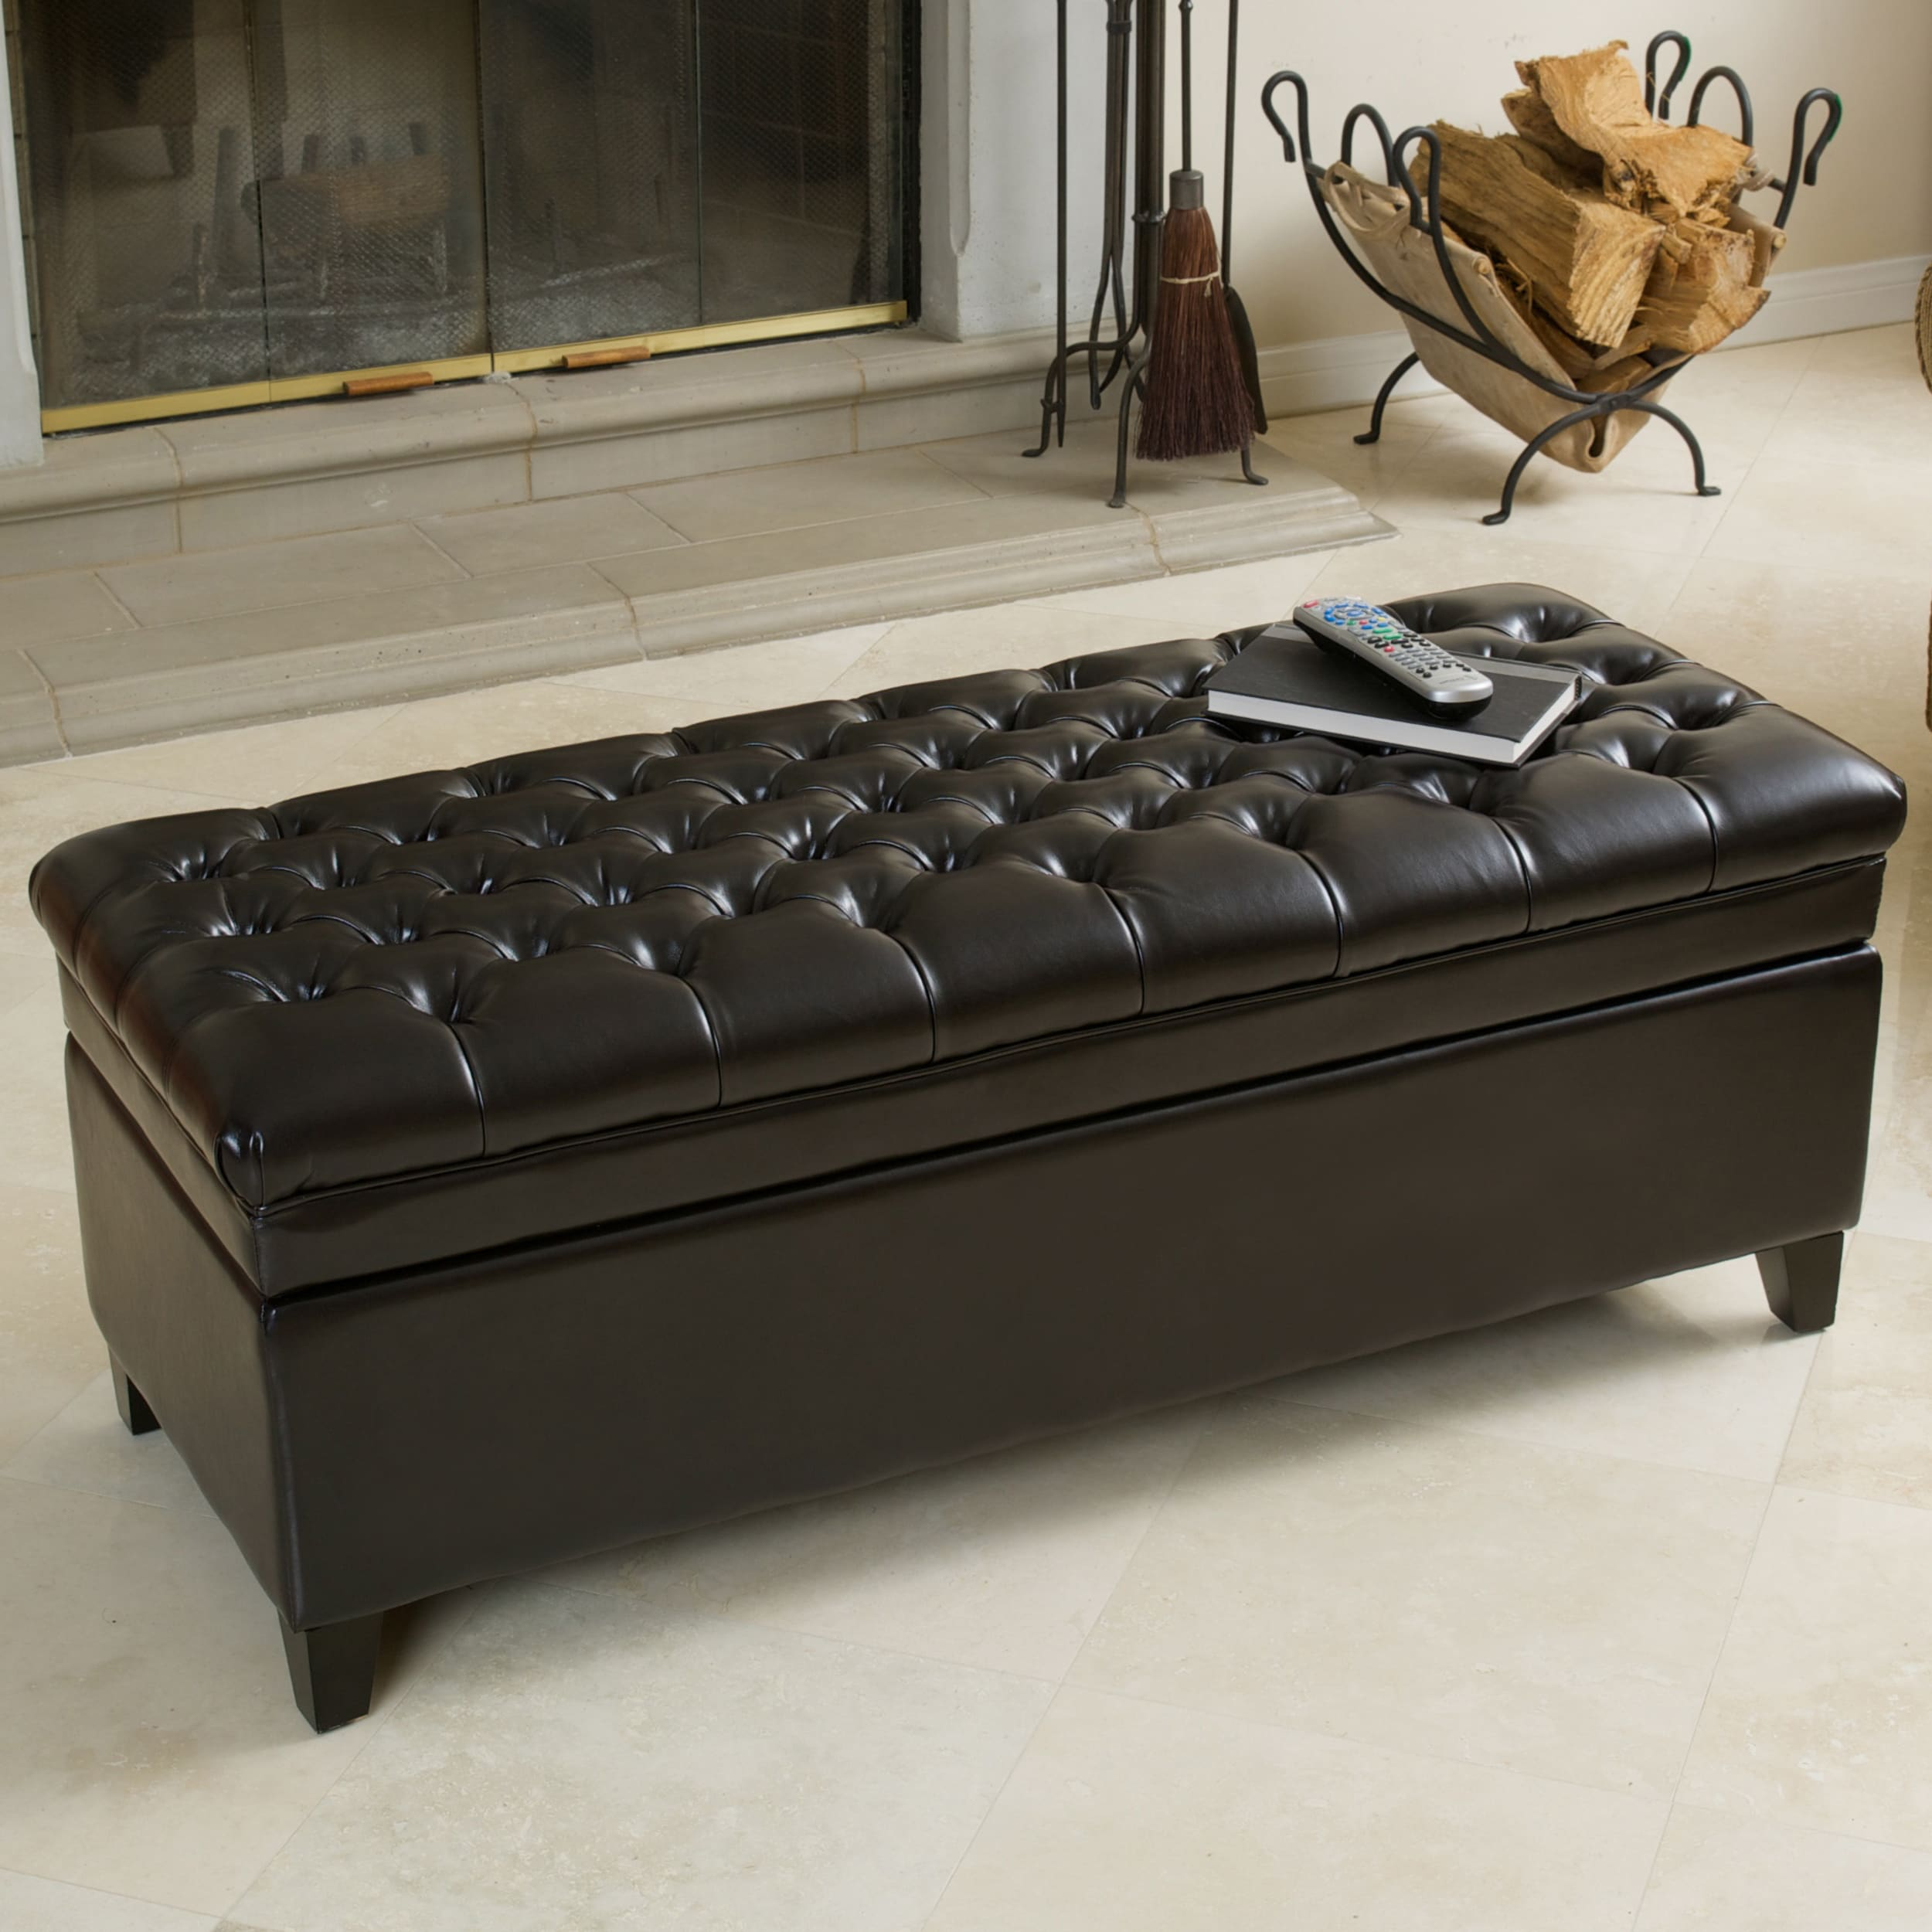 Hastings Tufted Espresso Bonded Leather Storage Ottoman b...